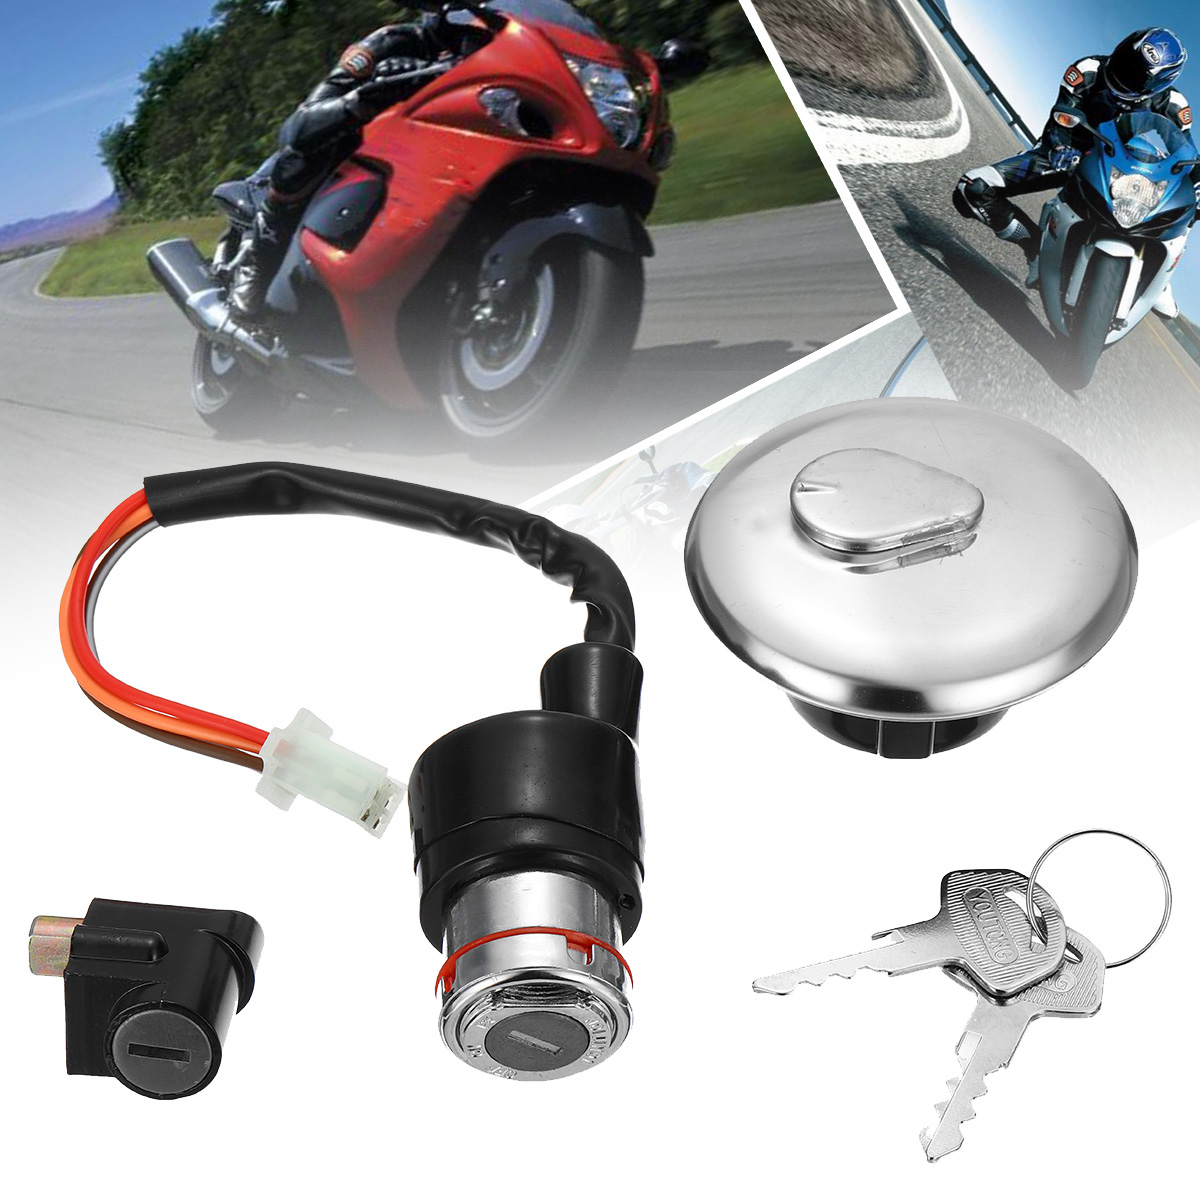 Complete Lock Set Ignition Main Switch 2 Keys Petrol Cap For Suzuki GN125 GN 125 Motorcycle Moto Accessories